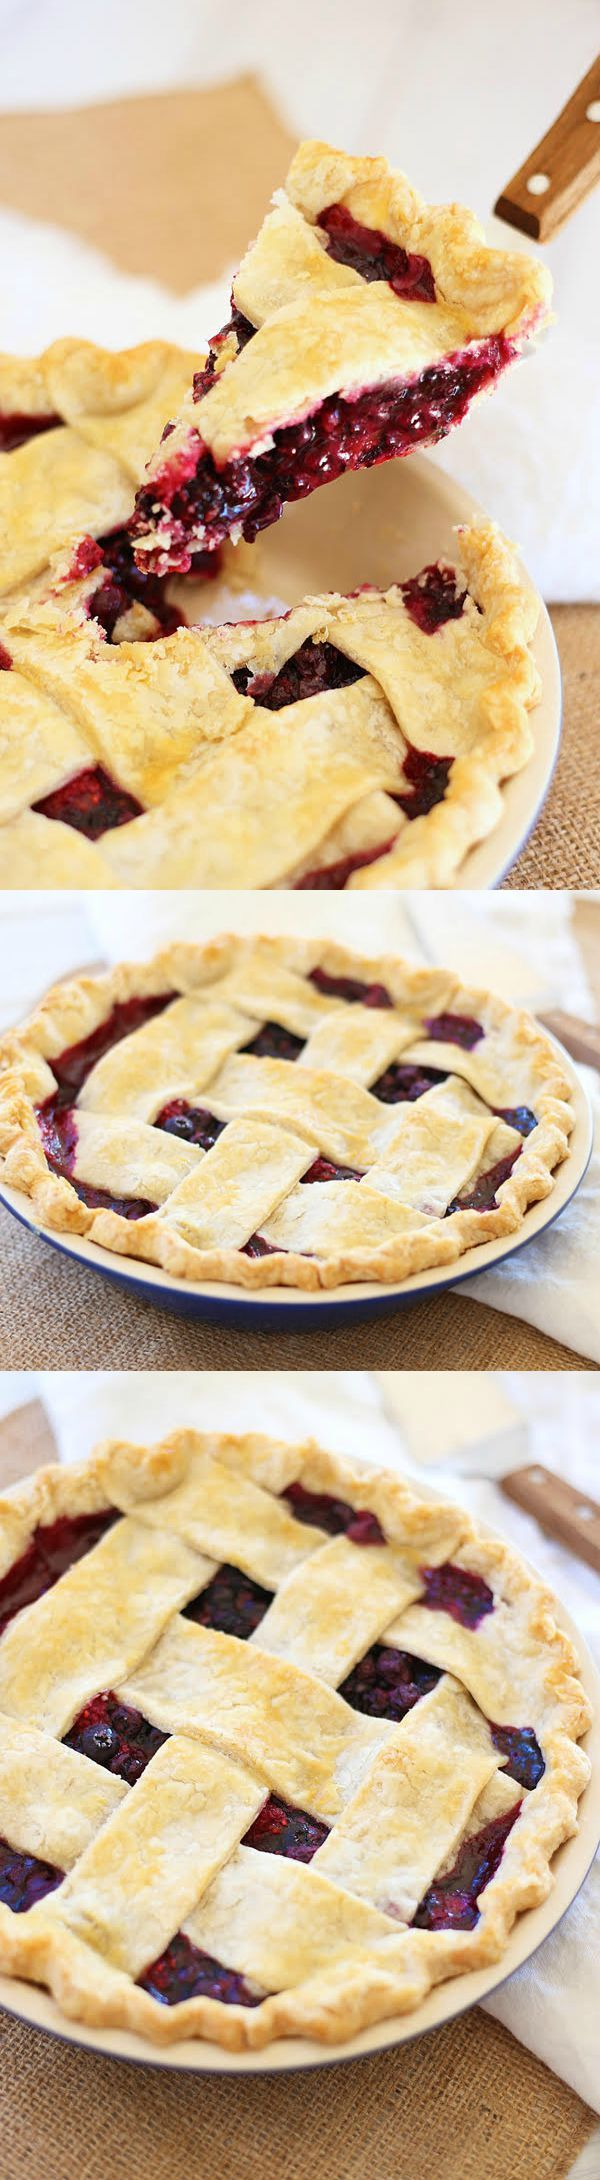 Triple Berry Pie - flaky and crumbly pie with sweet and delicious triple berry filling. This recipe is easy, fail proof and amazing! | rasamalaysia.com